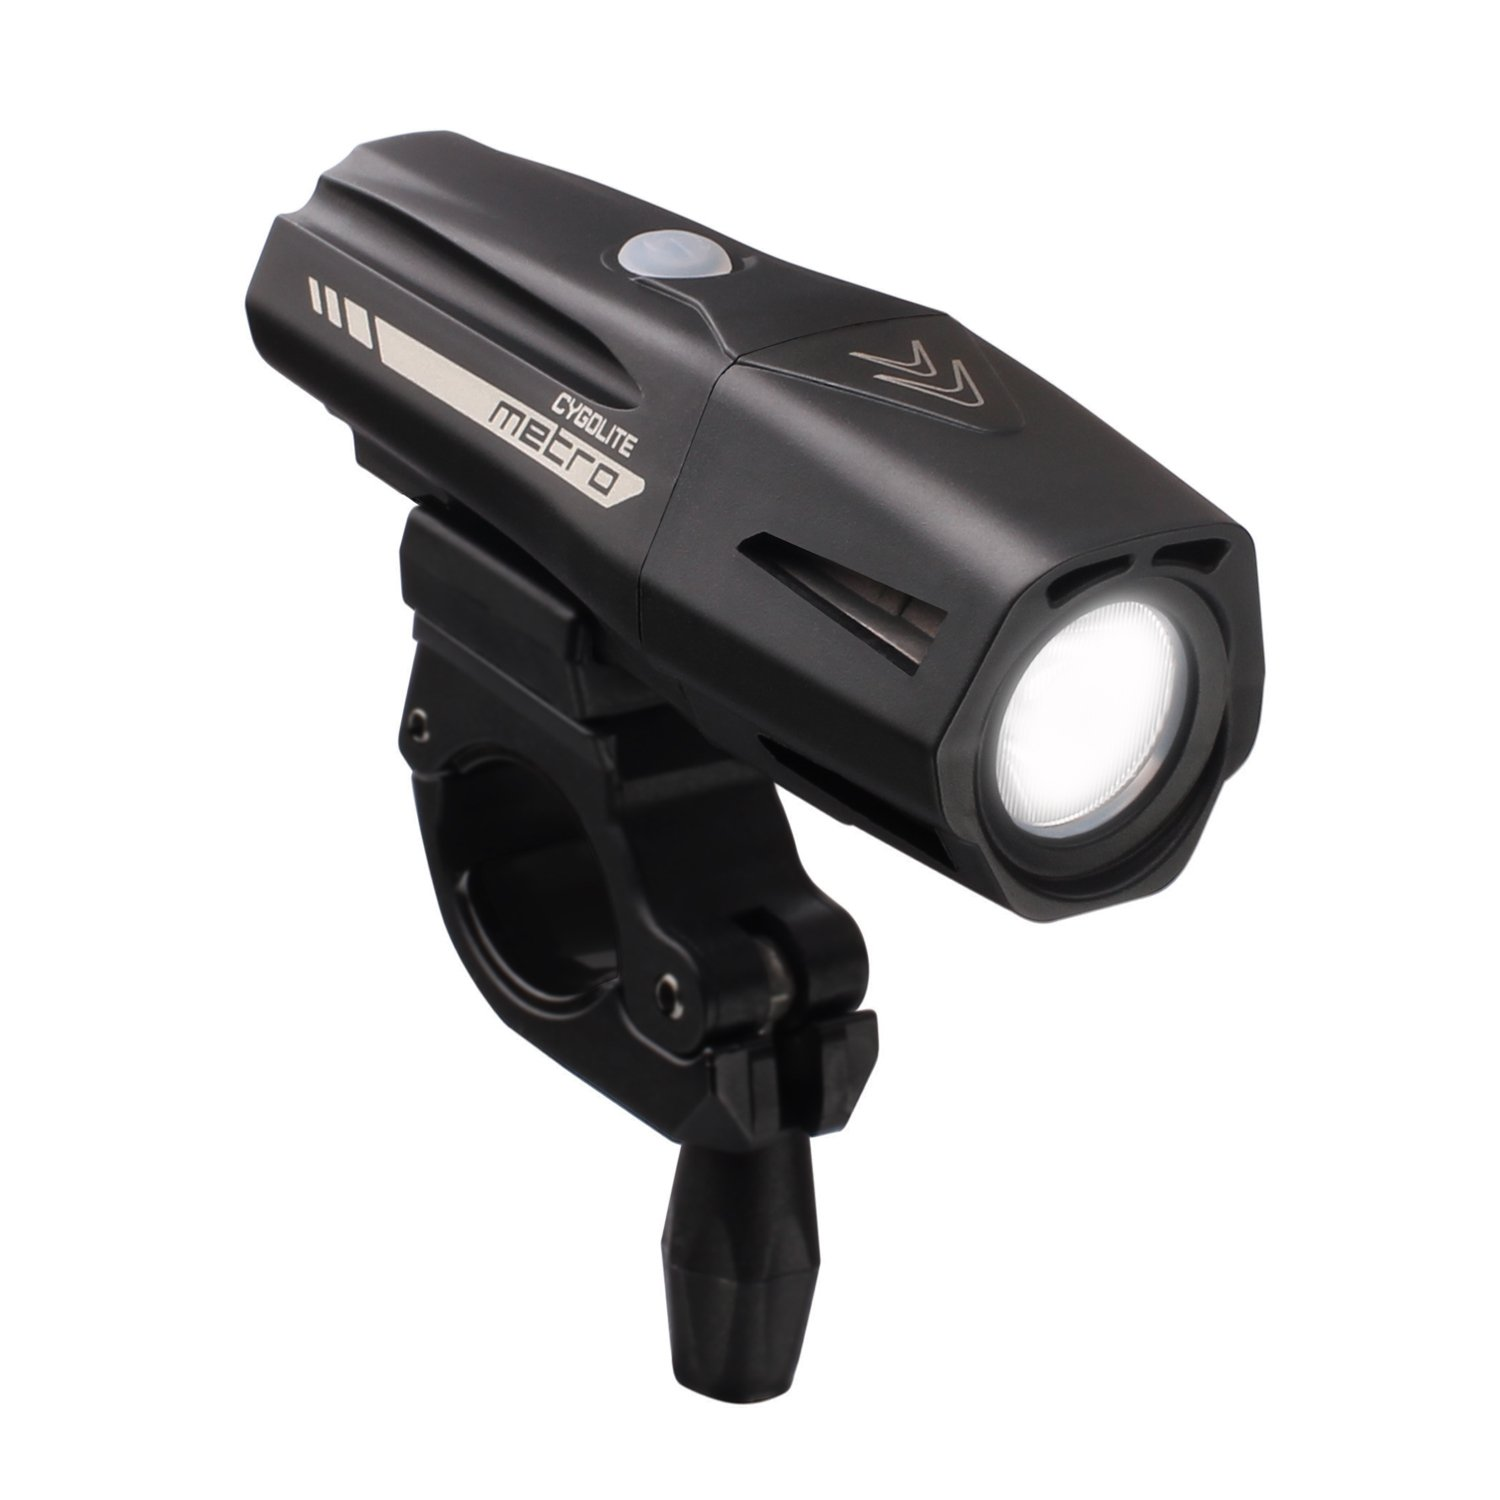 Cygolite Metro Pro 1100 USB Rechargeable Bike Light, Black